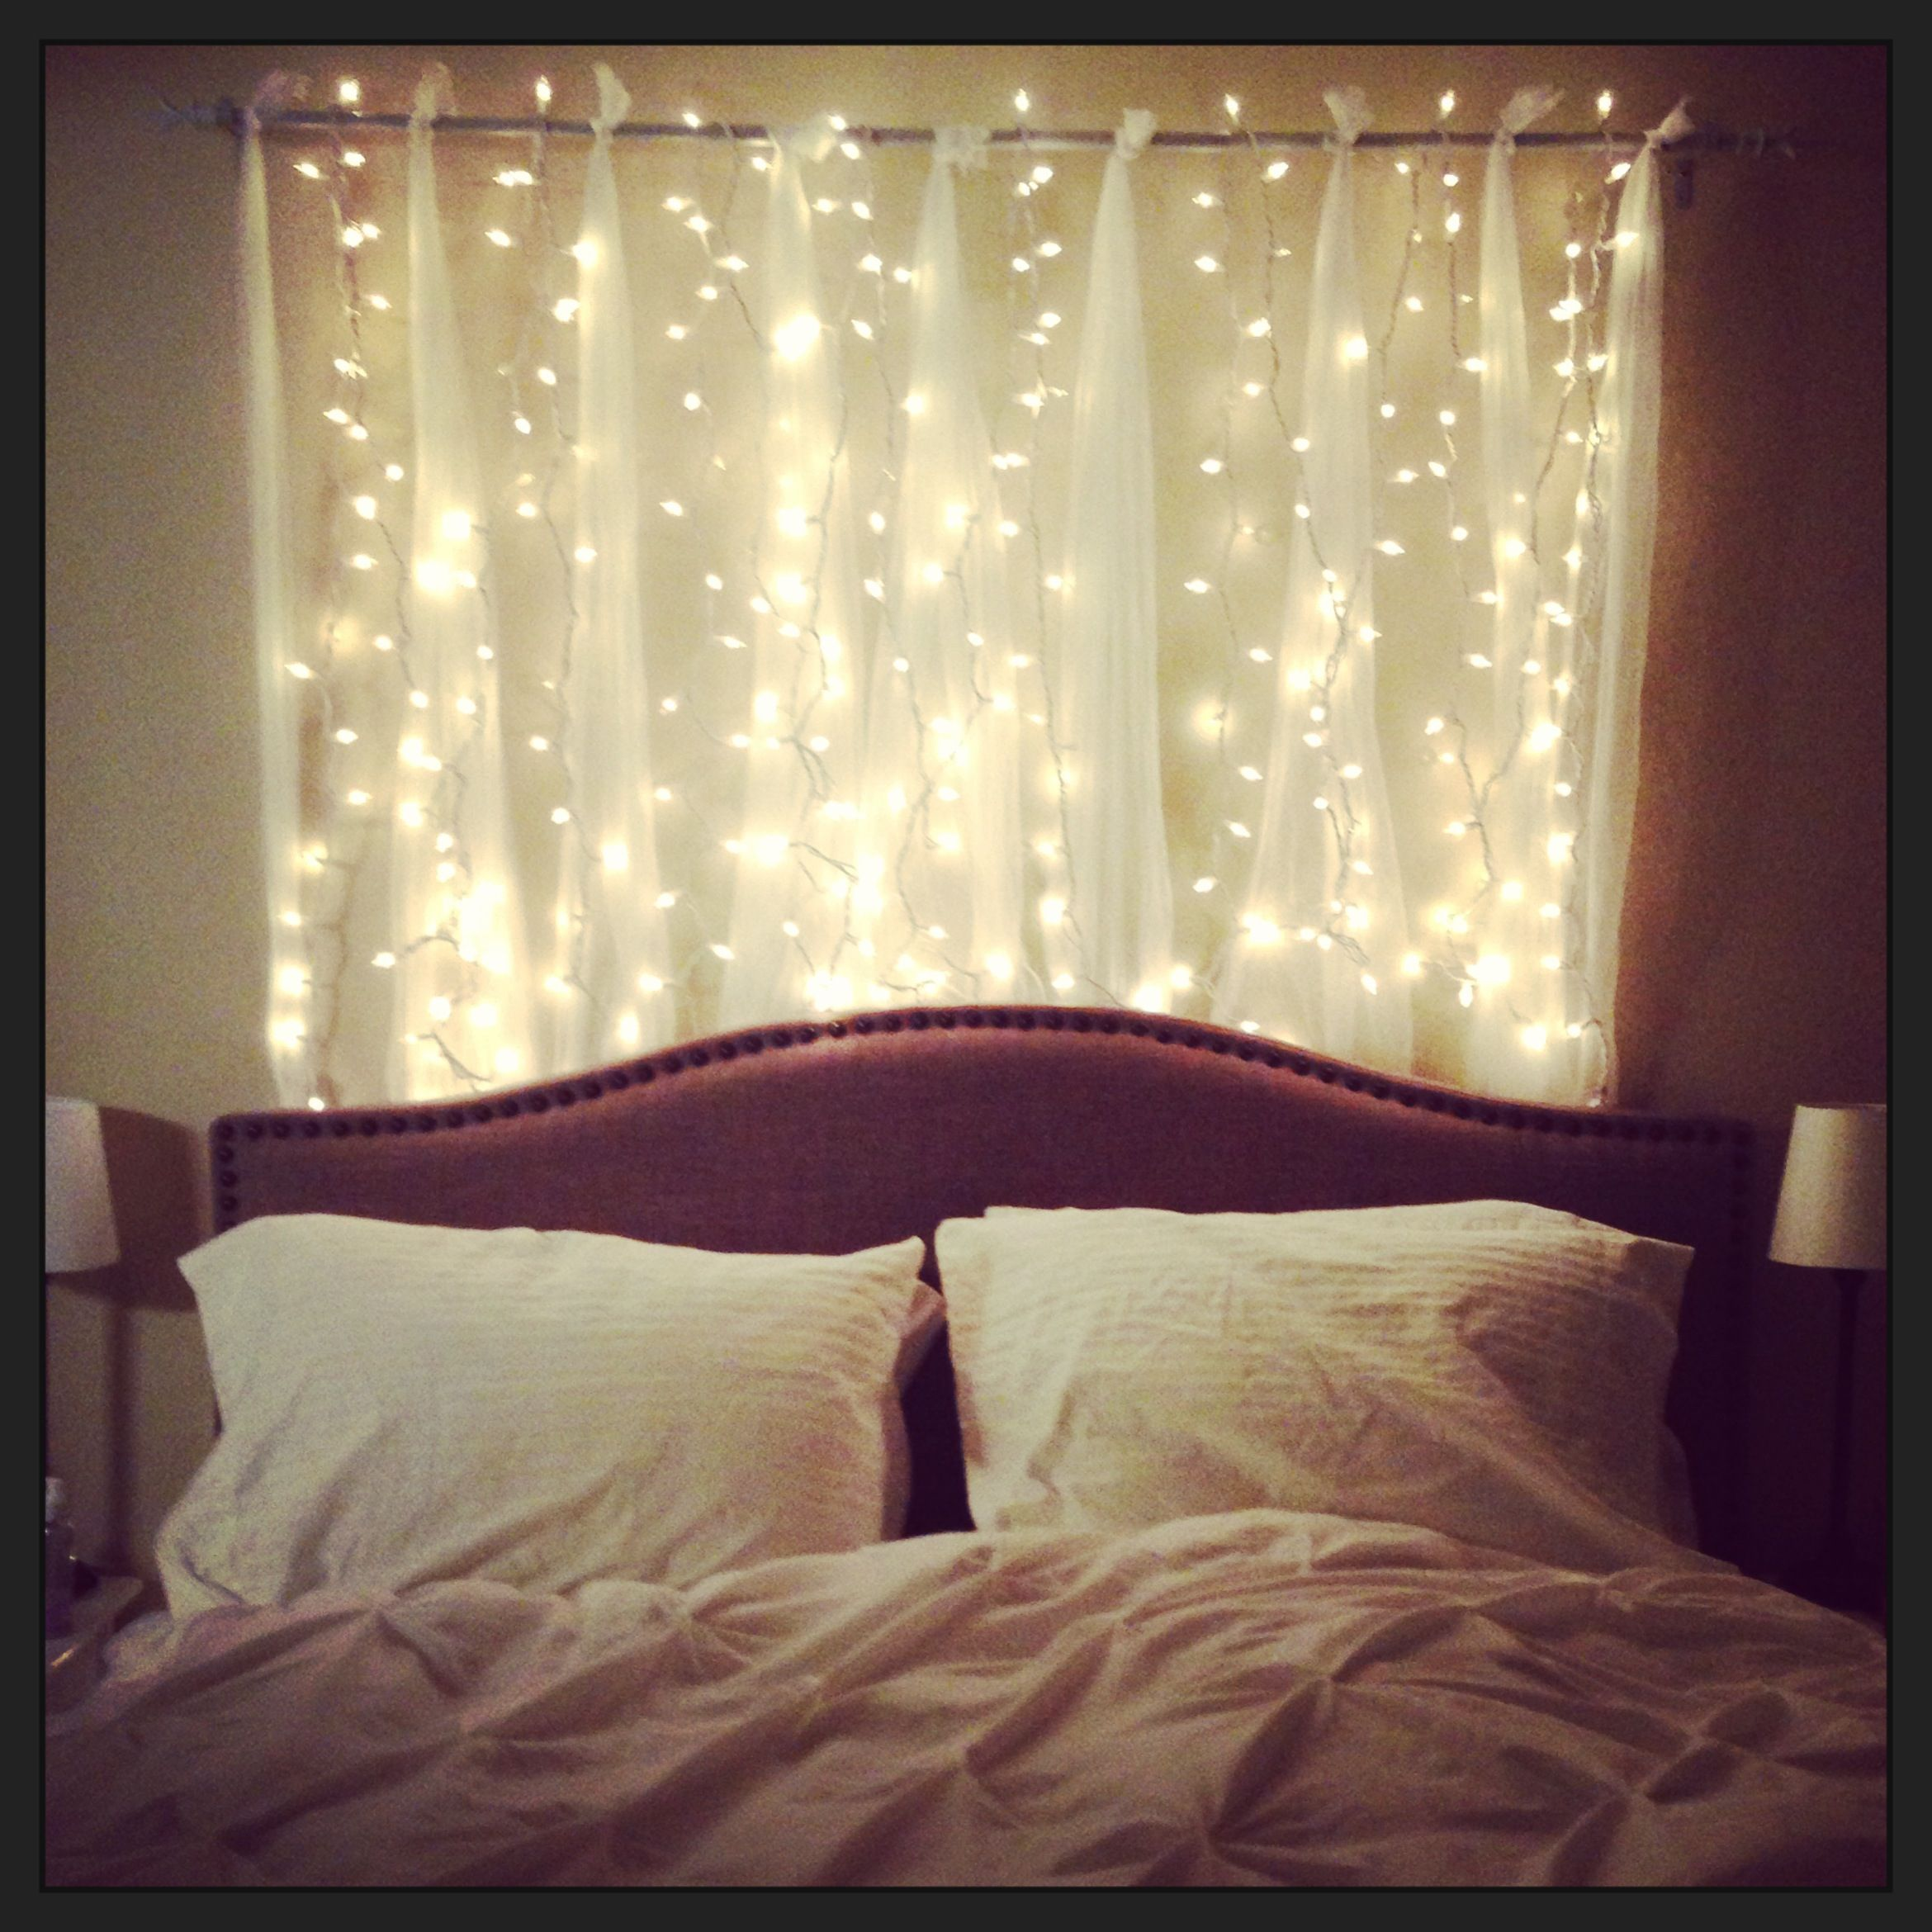 Etonnant Twinkle Lights Headboard ... I Absolutely Love This! White Lights Bedroom,  Decorative